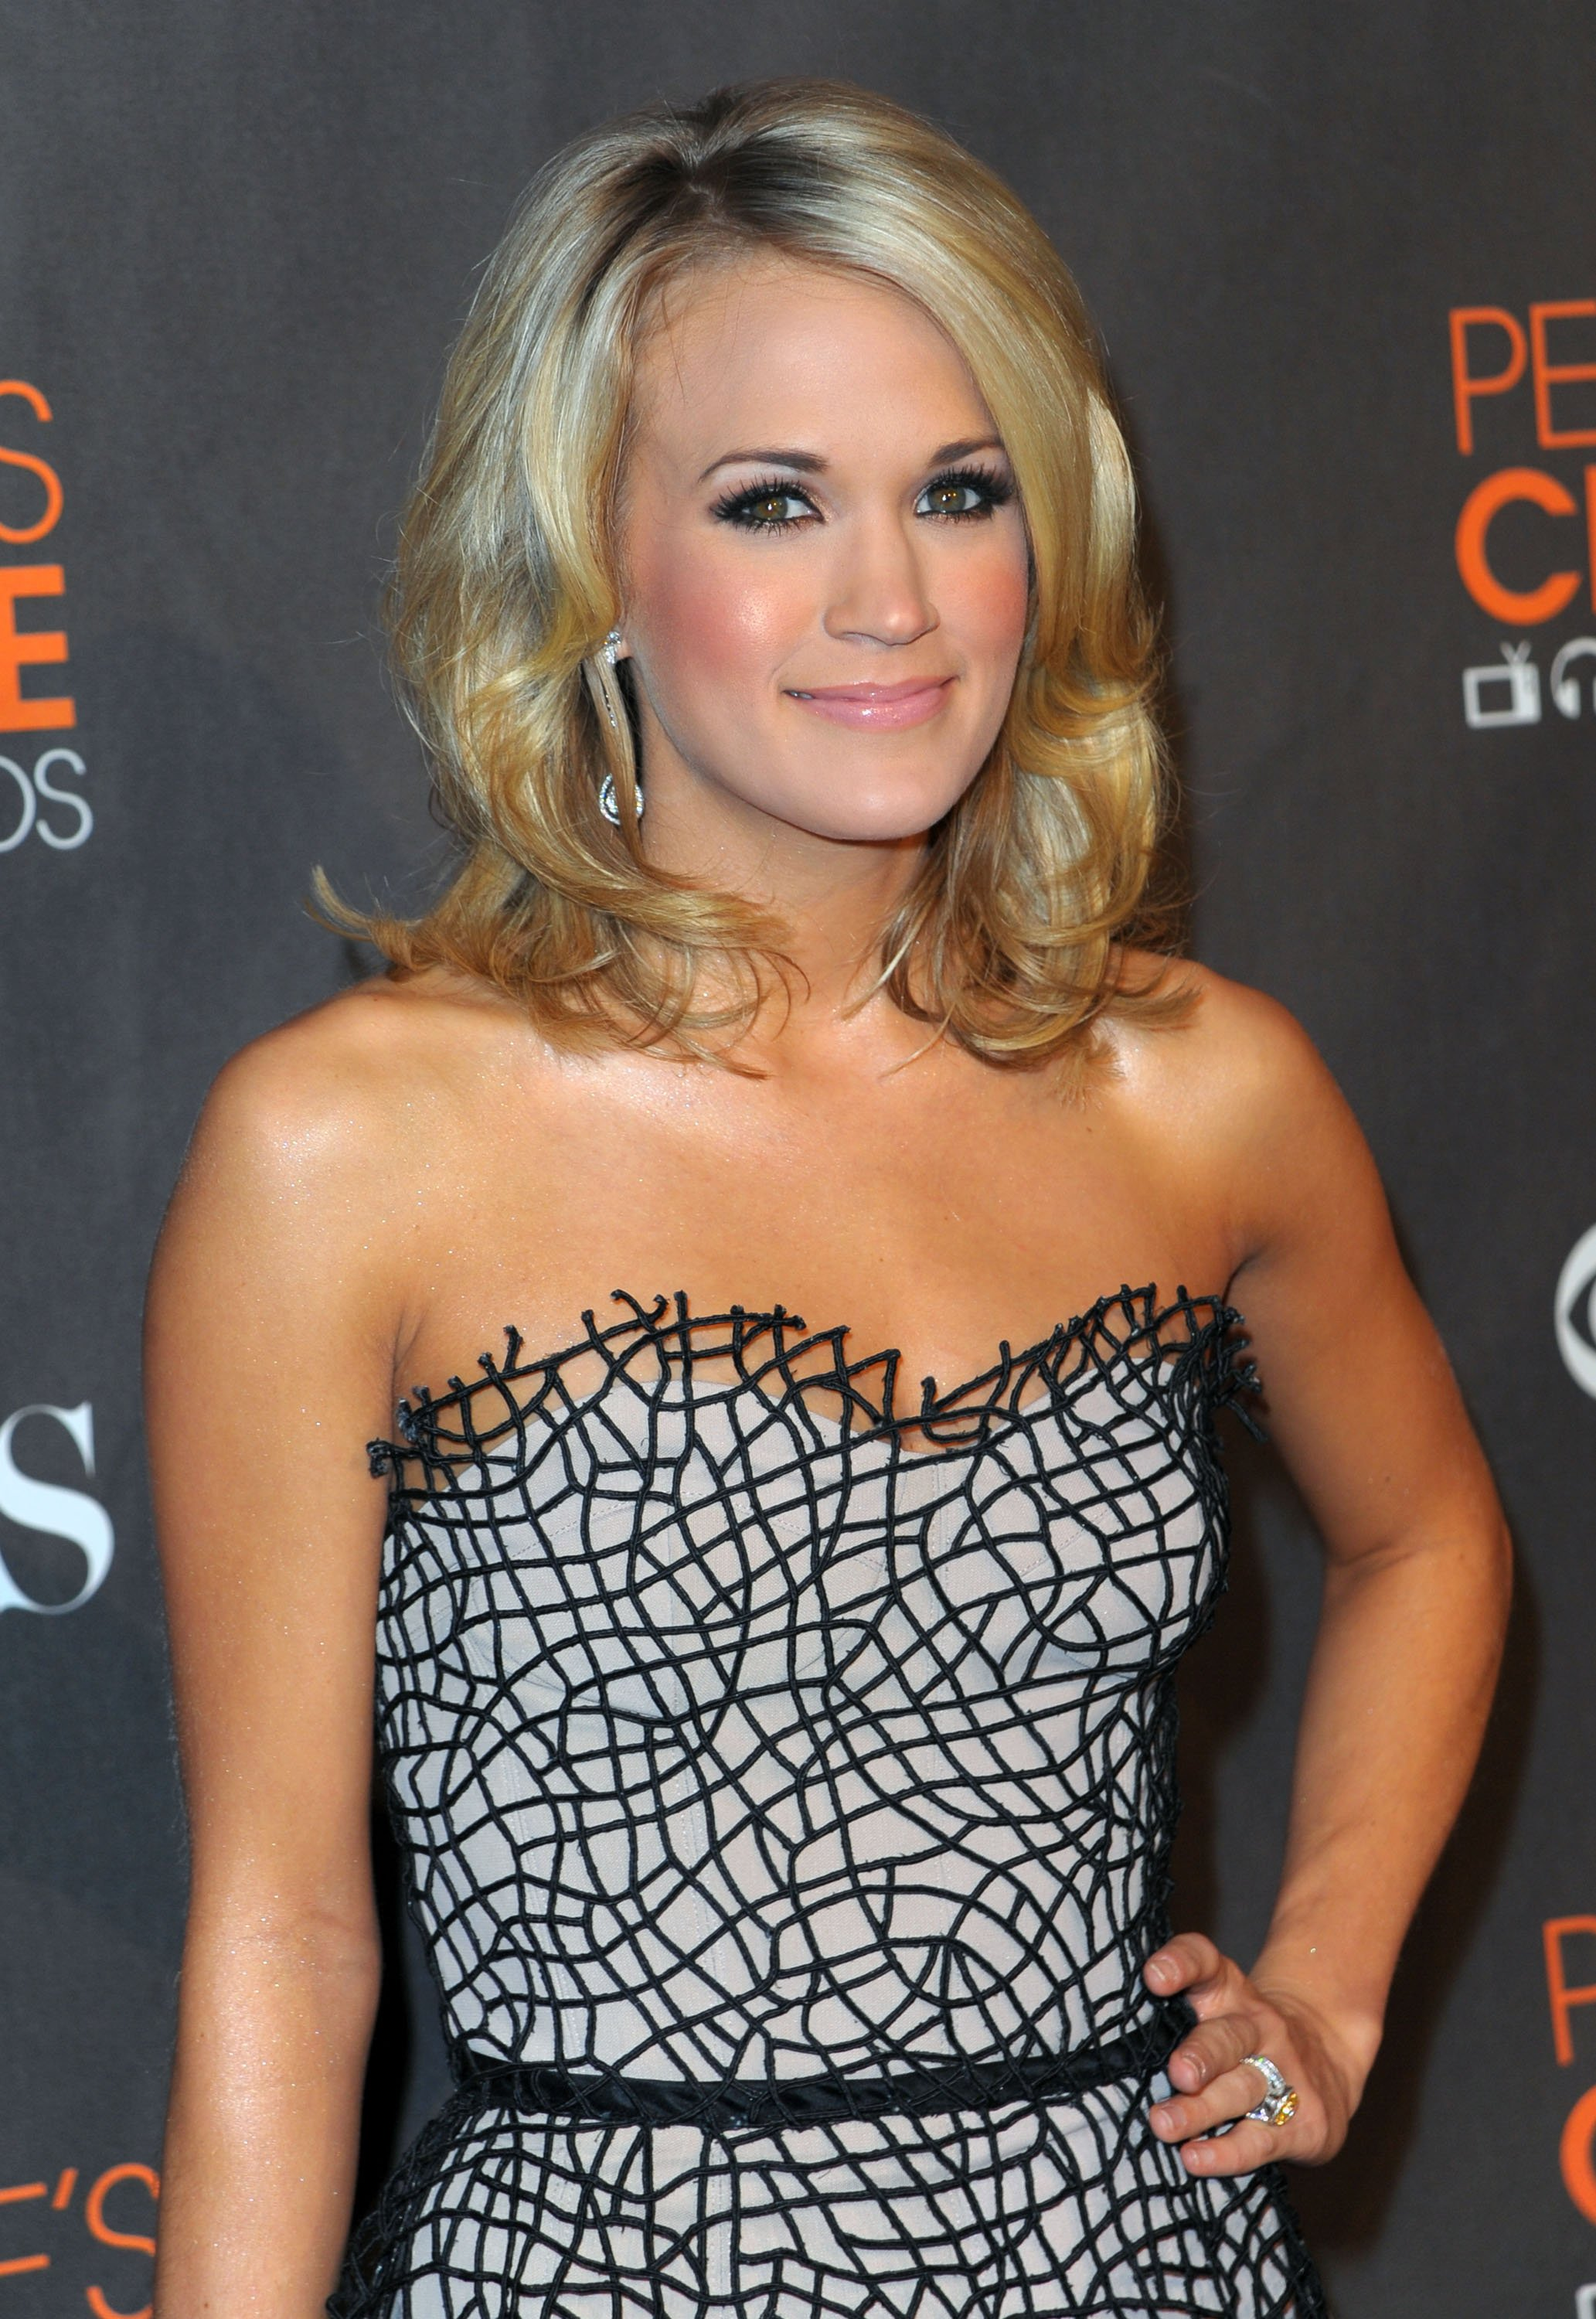 27616_Celebutopia-Carrie_Underwood_arrives_at_the_People97s_Choice_Awards_2010-04_122_60lo.jpg